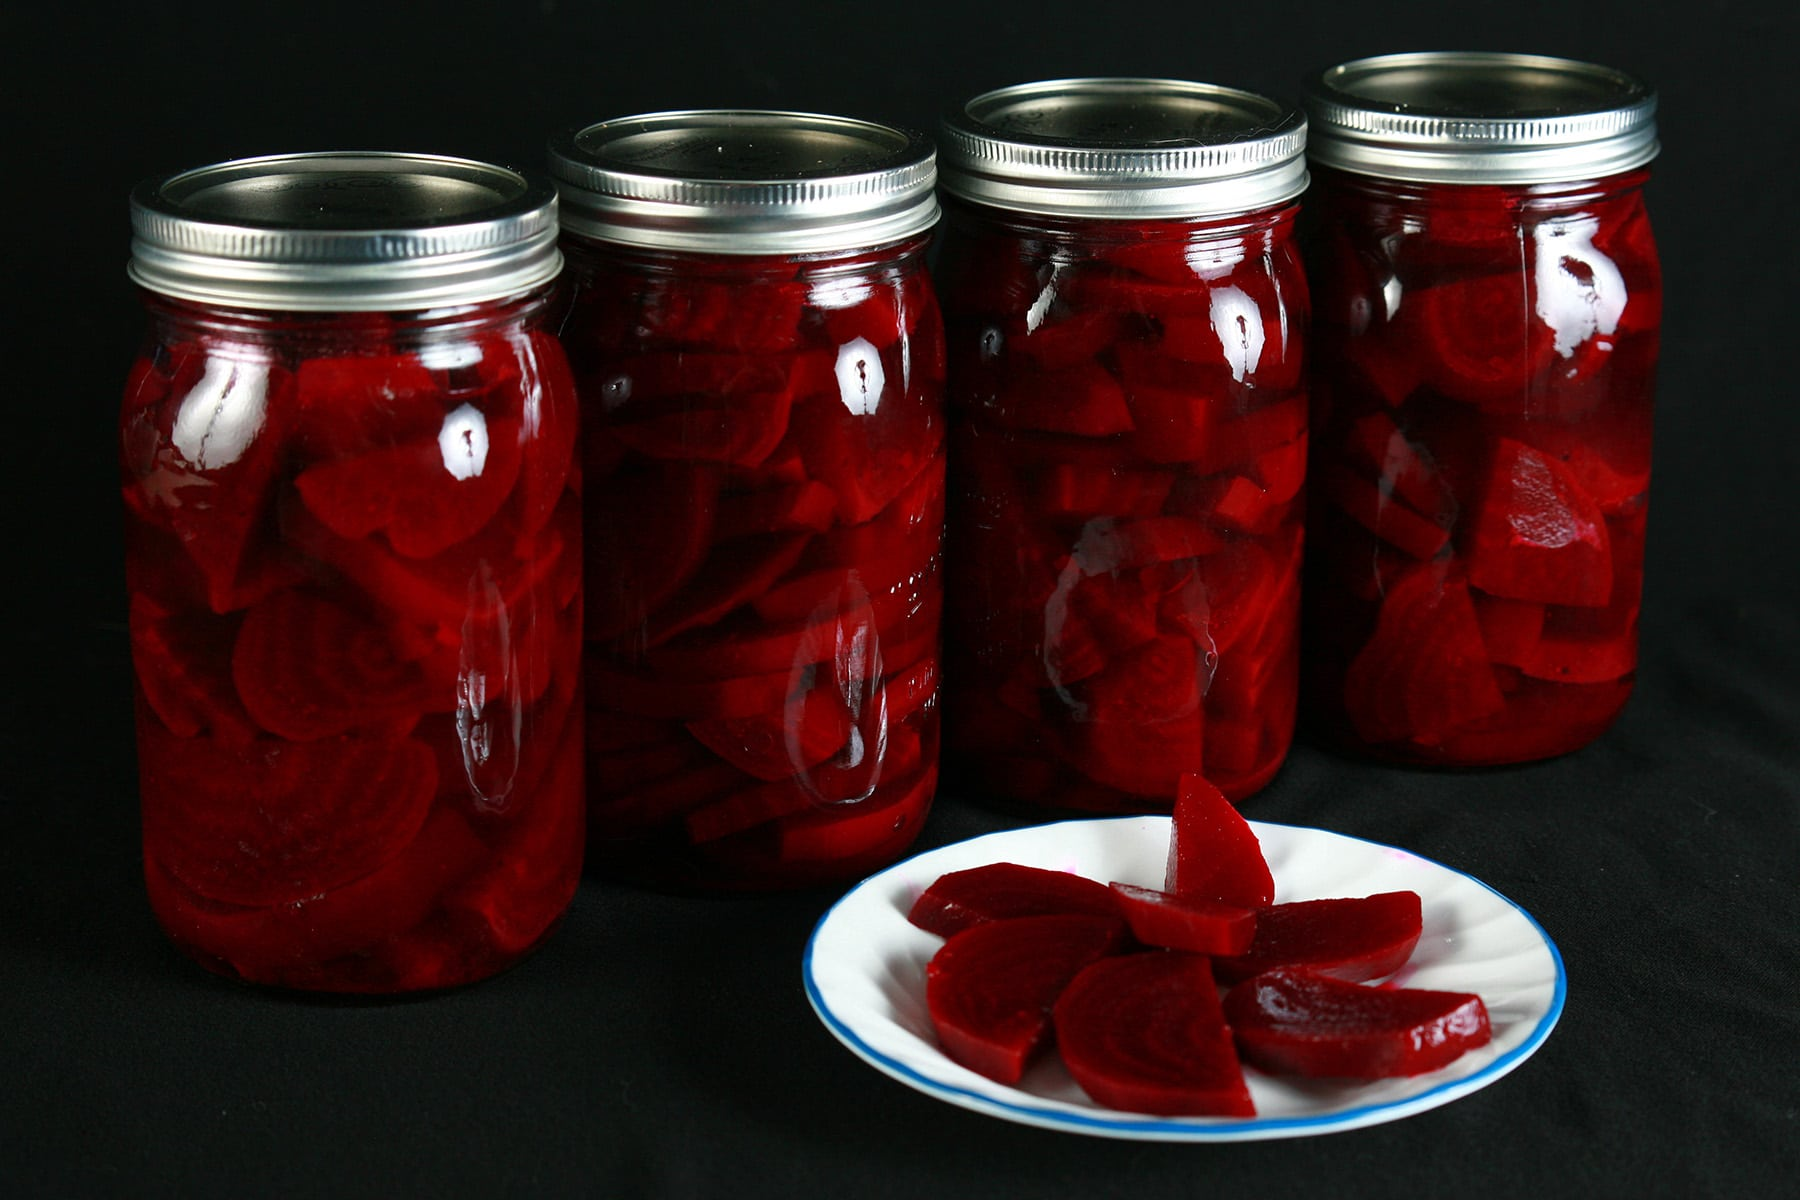 A row of beet pickle jars, behind a plate with pickled beets on it.